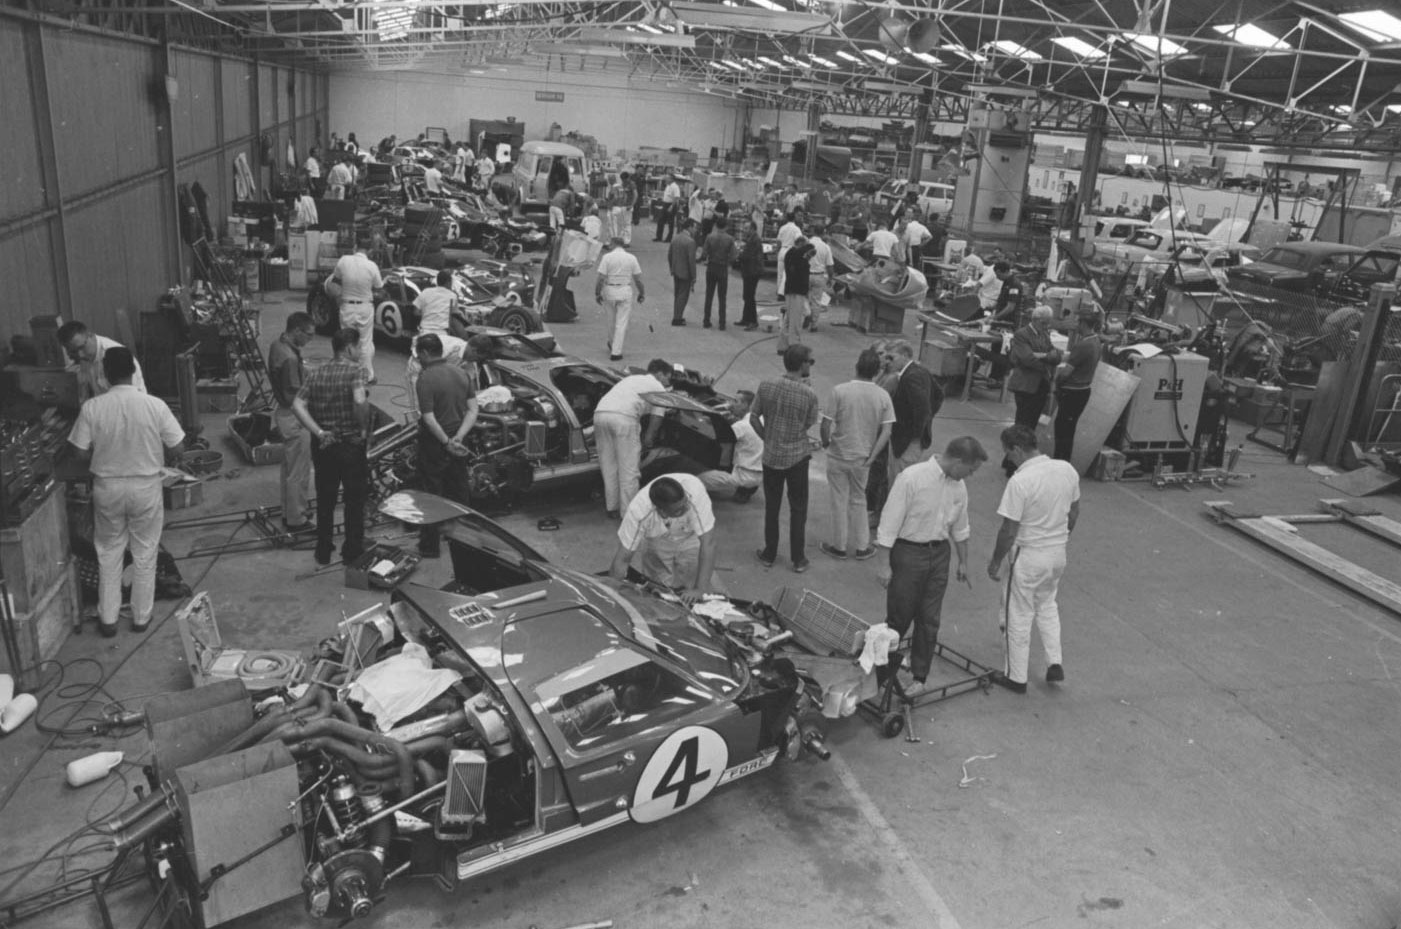 To do battle with Ferrari in the 1966 24 Hours of Le Mans, more than 100 technicians, mechanics, engineers, and administrators accompanied the eight GT40s fielded by the Shelby-American, Holman-Moody, and Alan Mann racing teams.